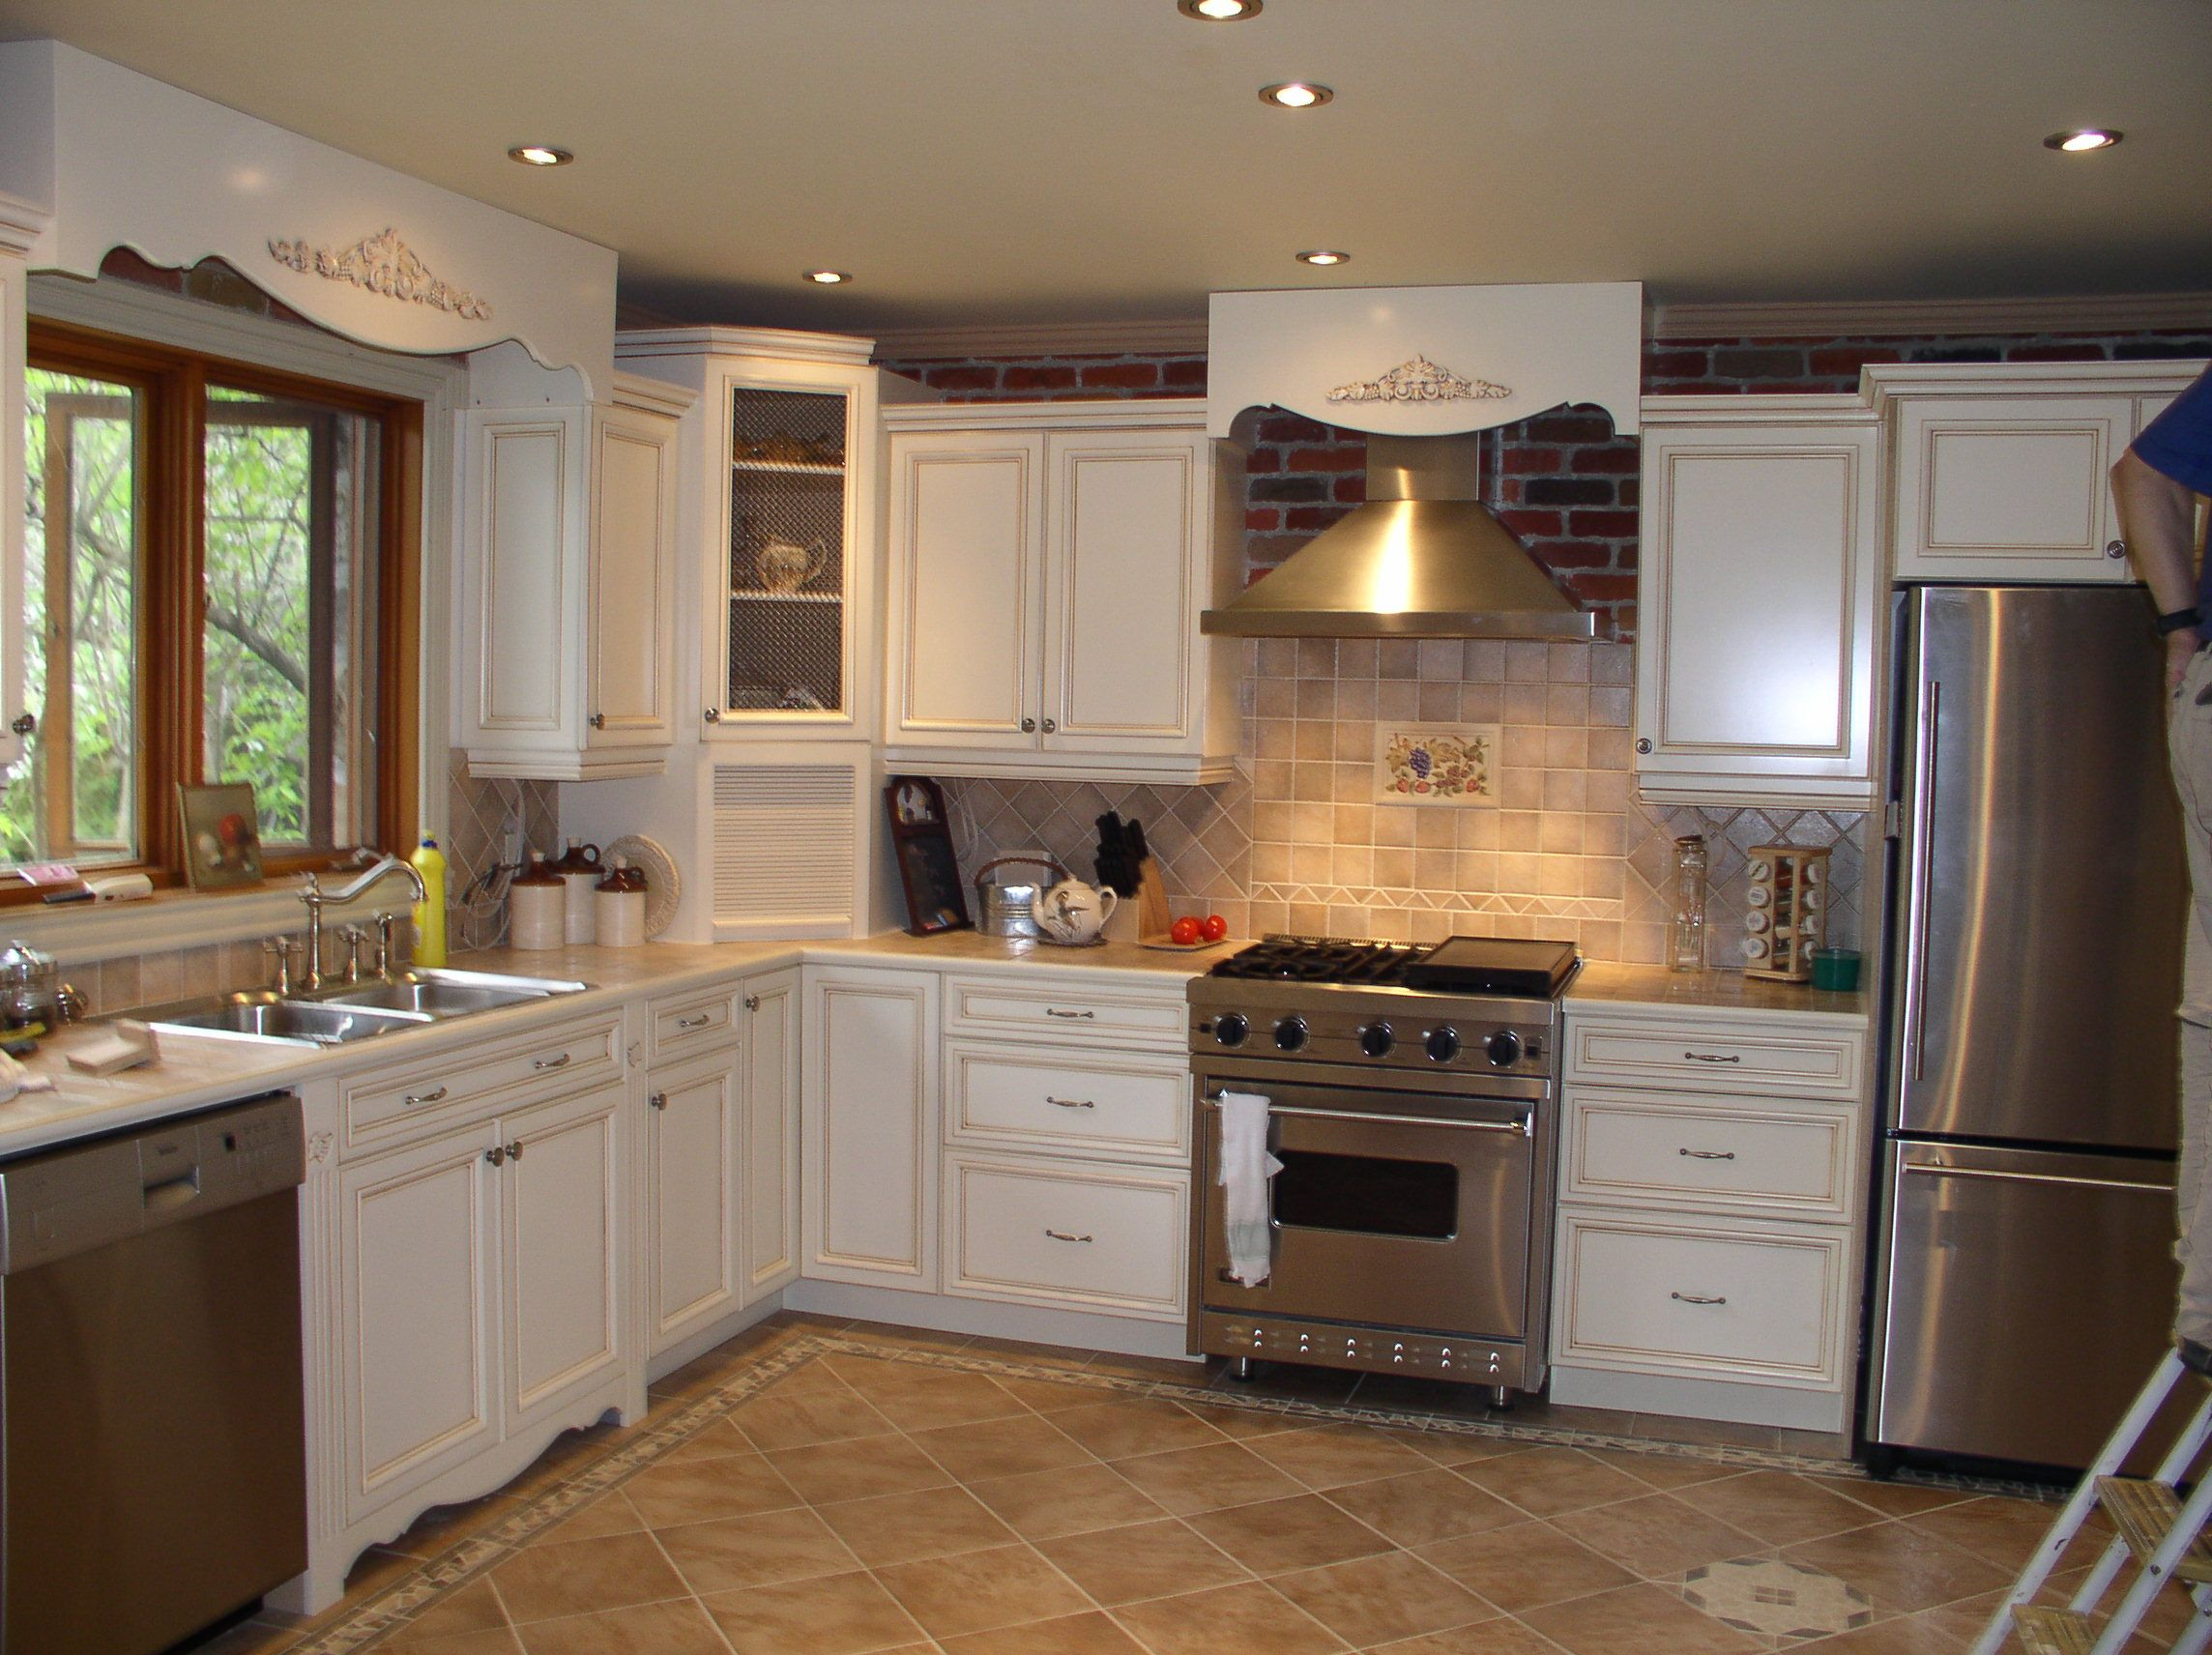 KitchenIdeas Kitchen remodeling ideas home improvement